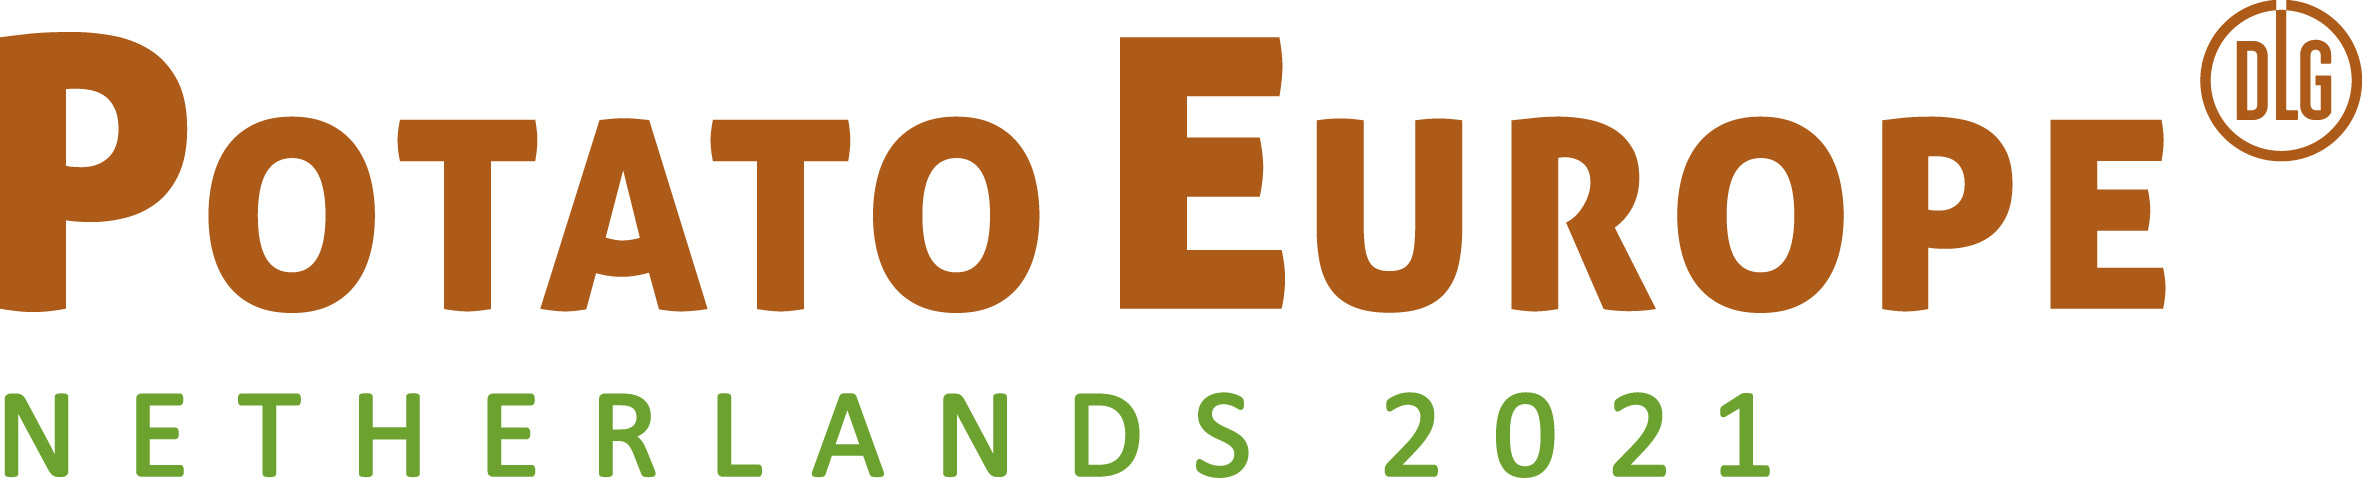 Logo Potatoeurope Netherlands